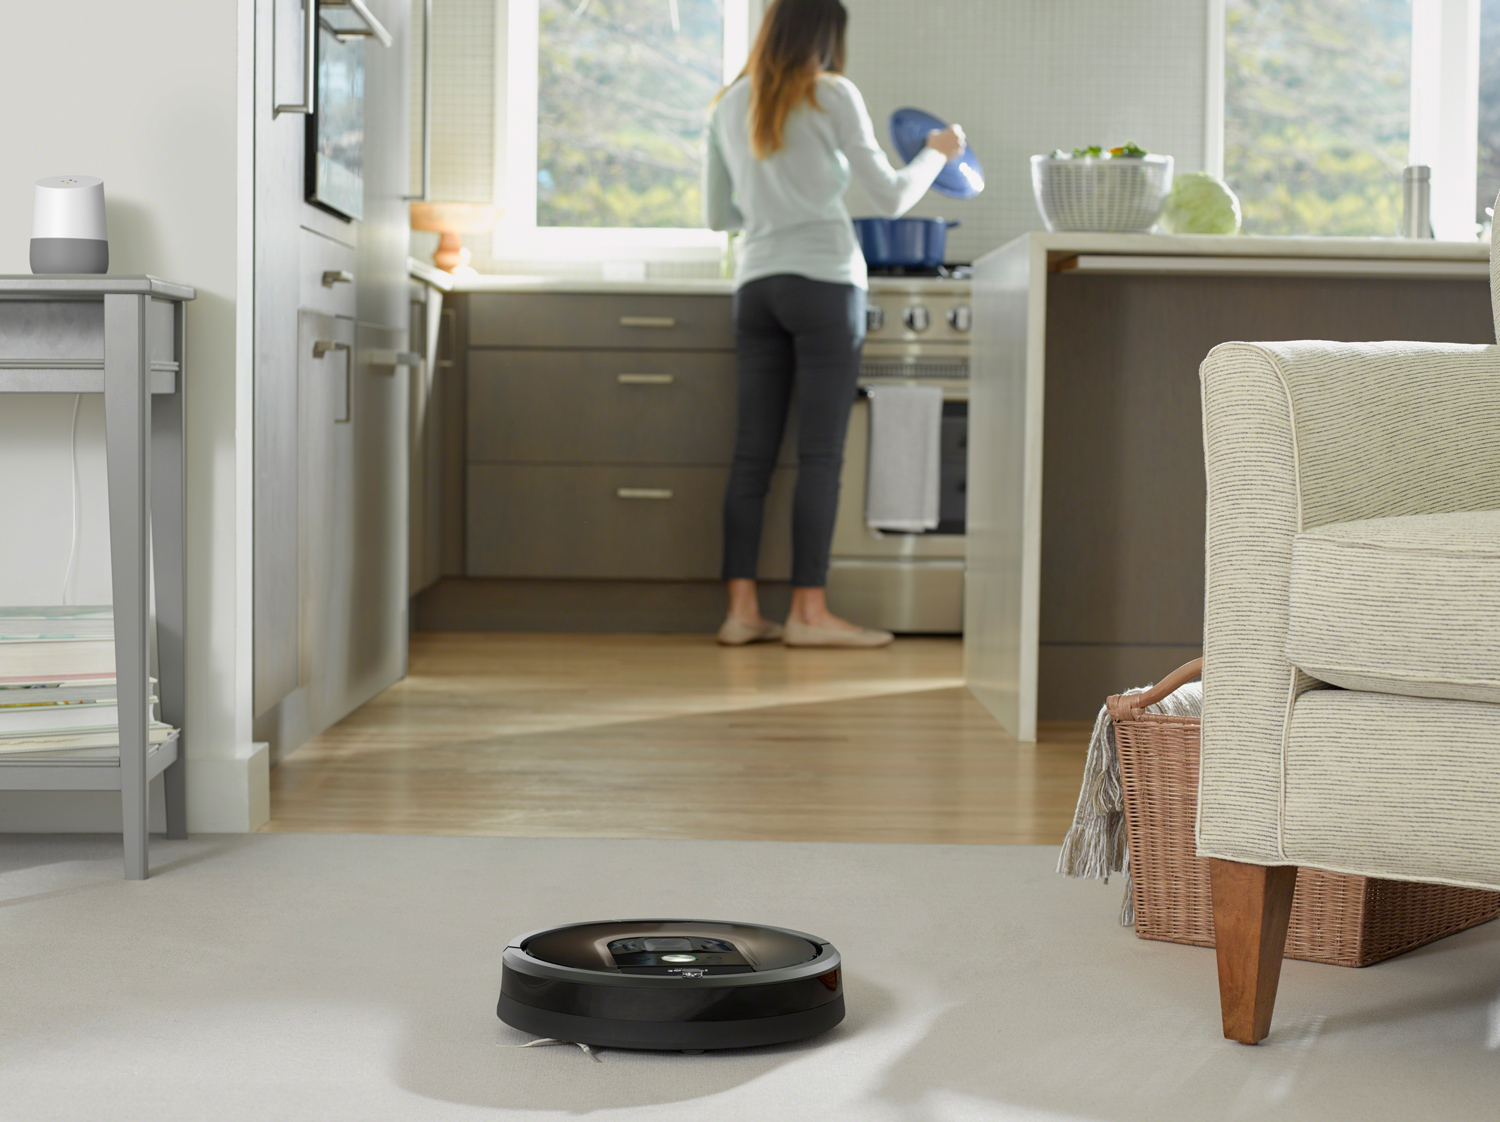 If Youu0027re A Cute Little Robotic Vacuum, Thereu0027s Good Reason To Have A Map  Of The Inside Of Someoneu0027s Home. You Can Be More Efficient When Tidying Up  ...